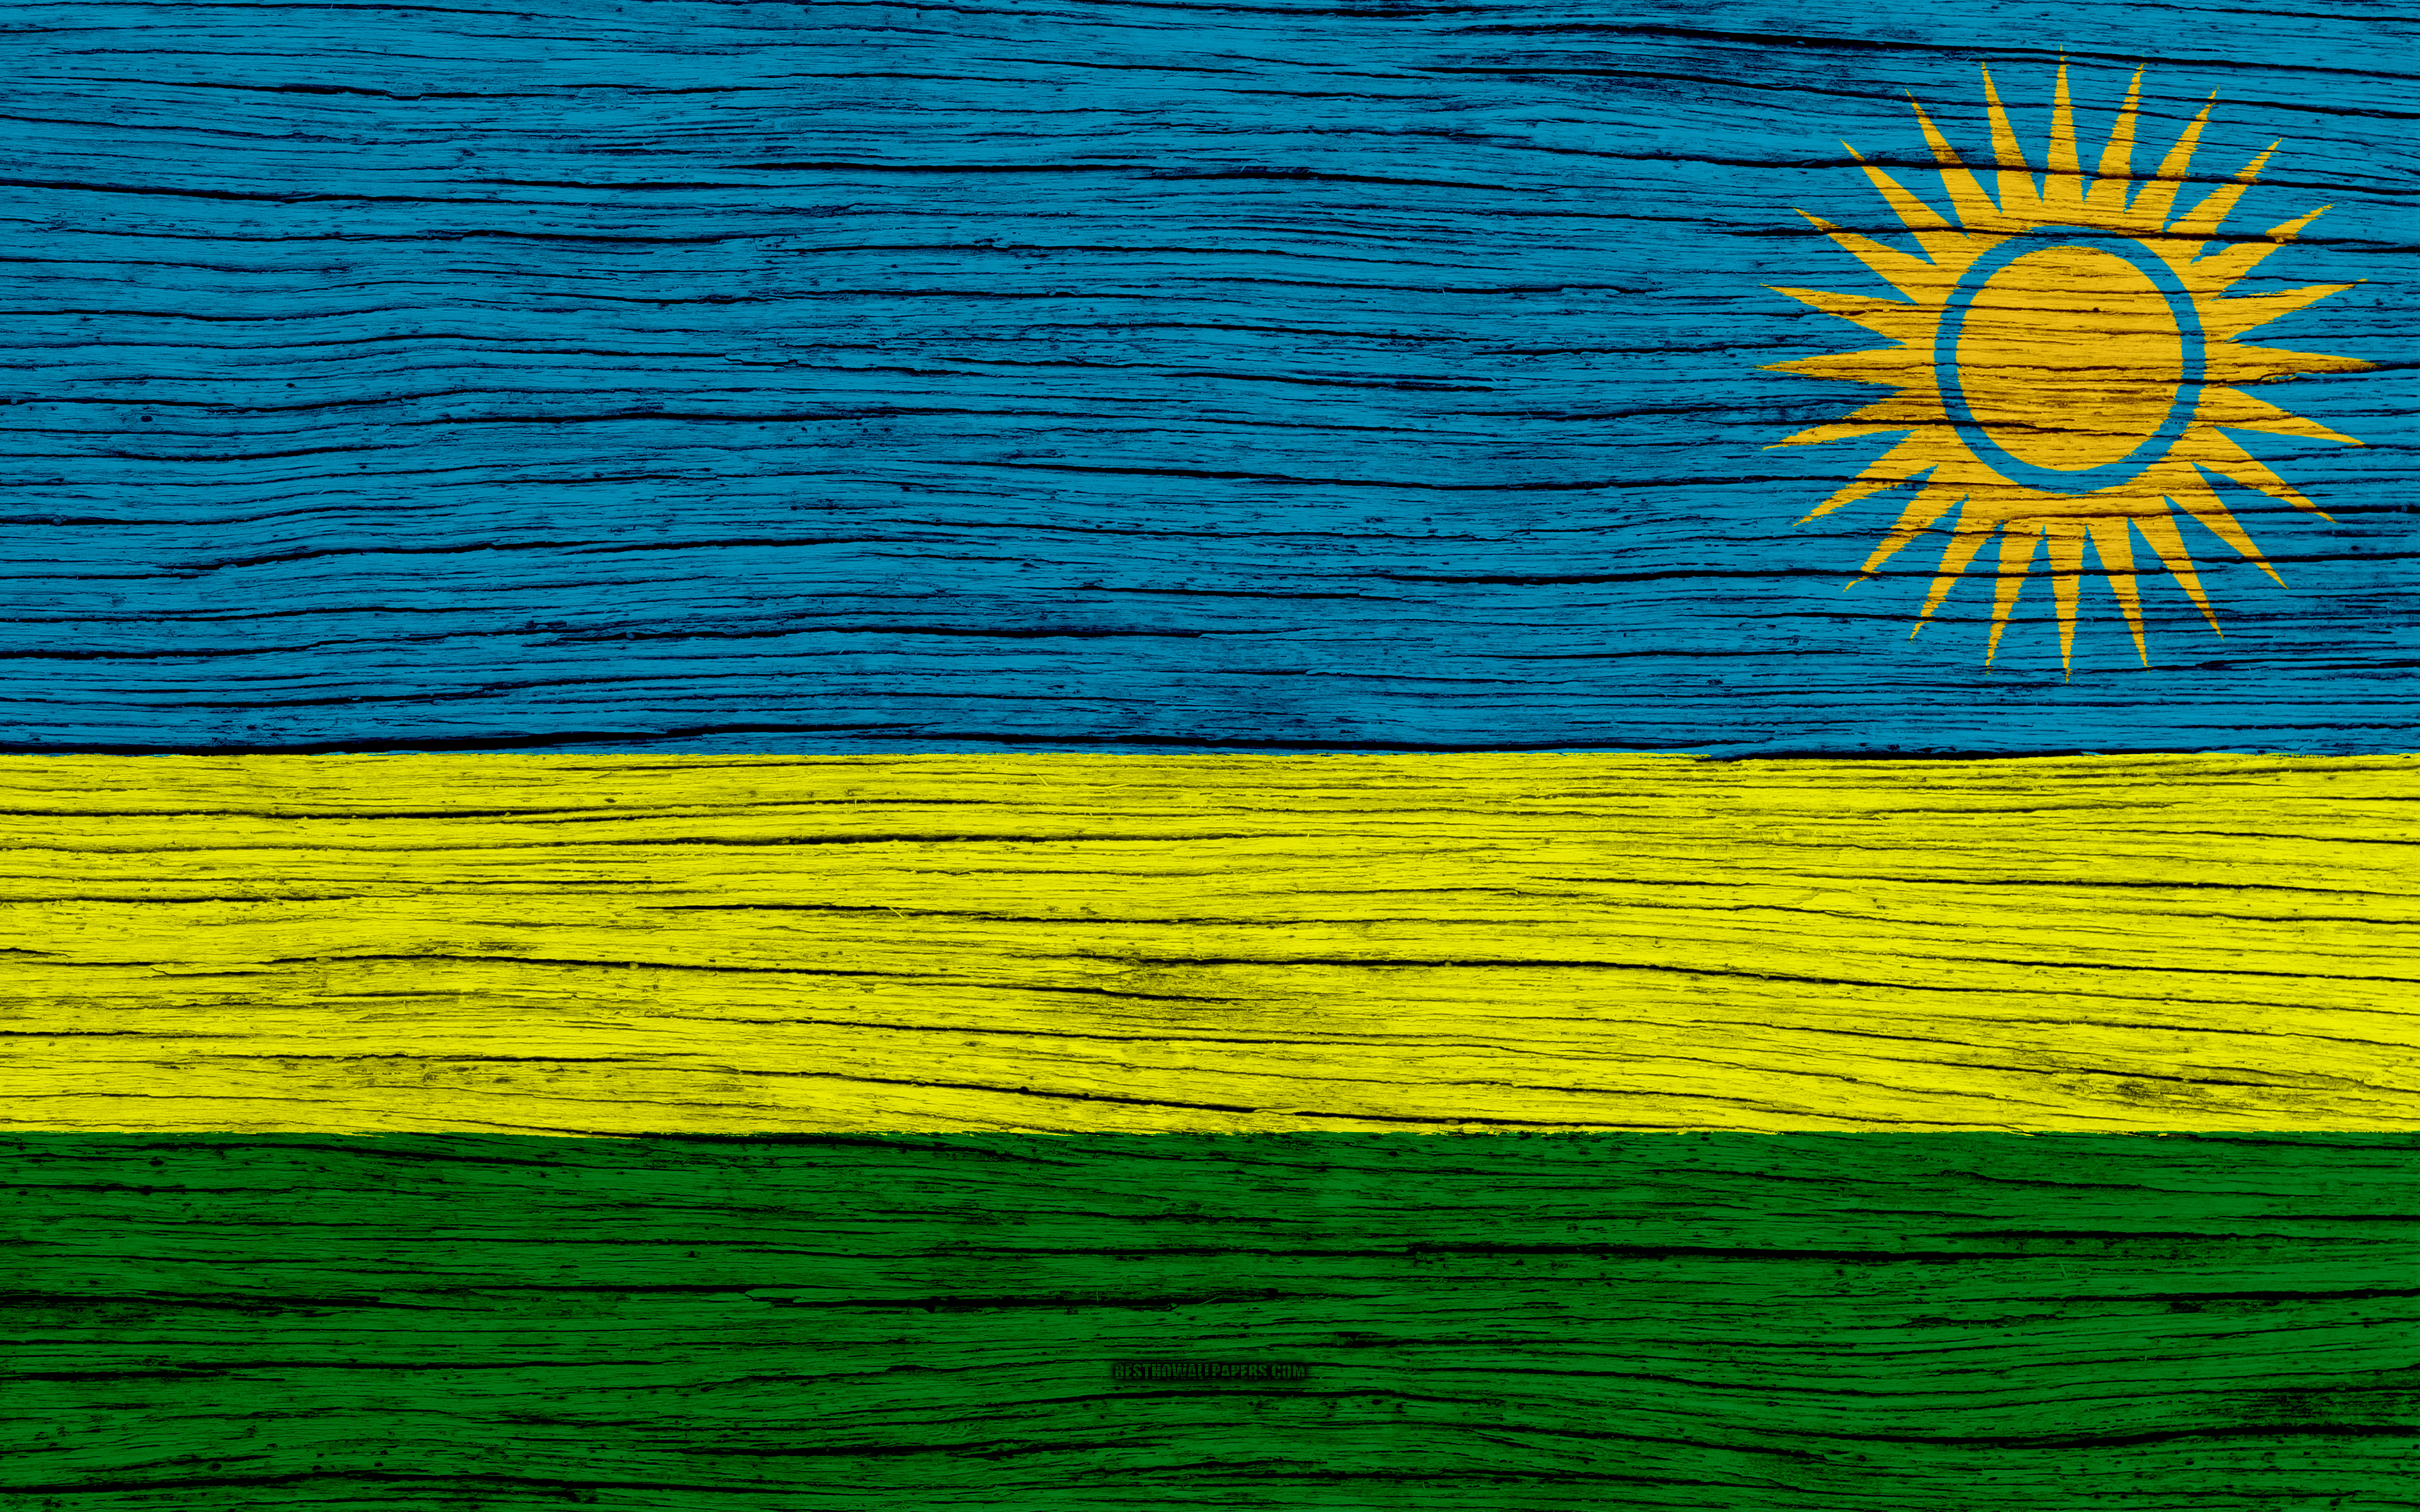 Download wallpapers Flag of Rwanda 4k Africa wooden texture 3840x2400